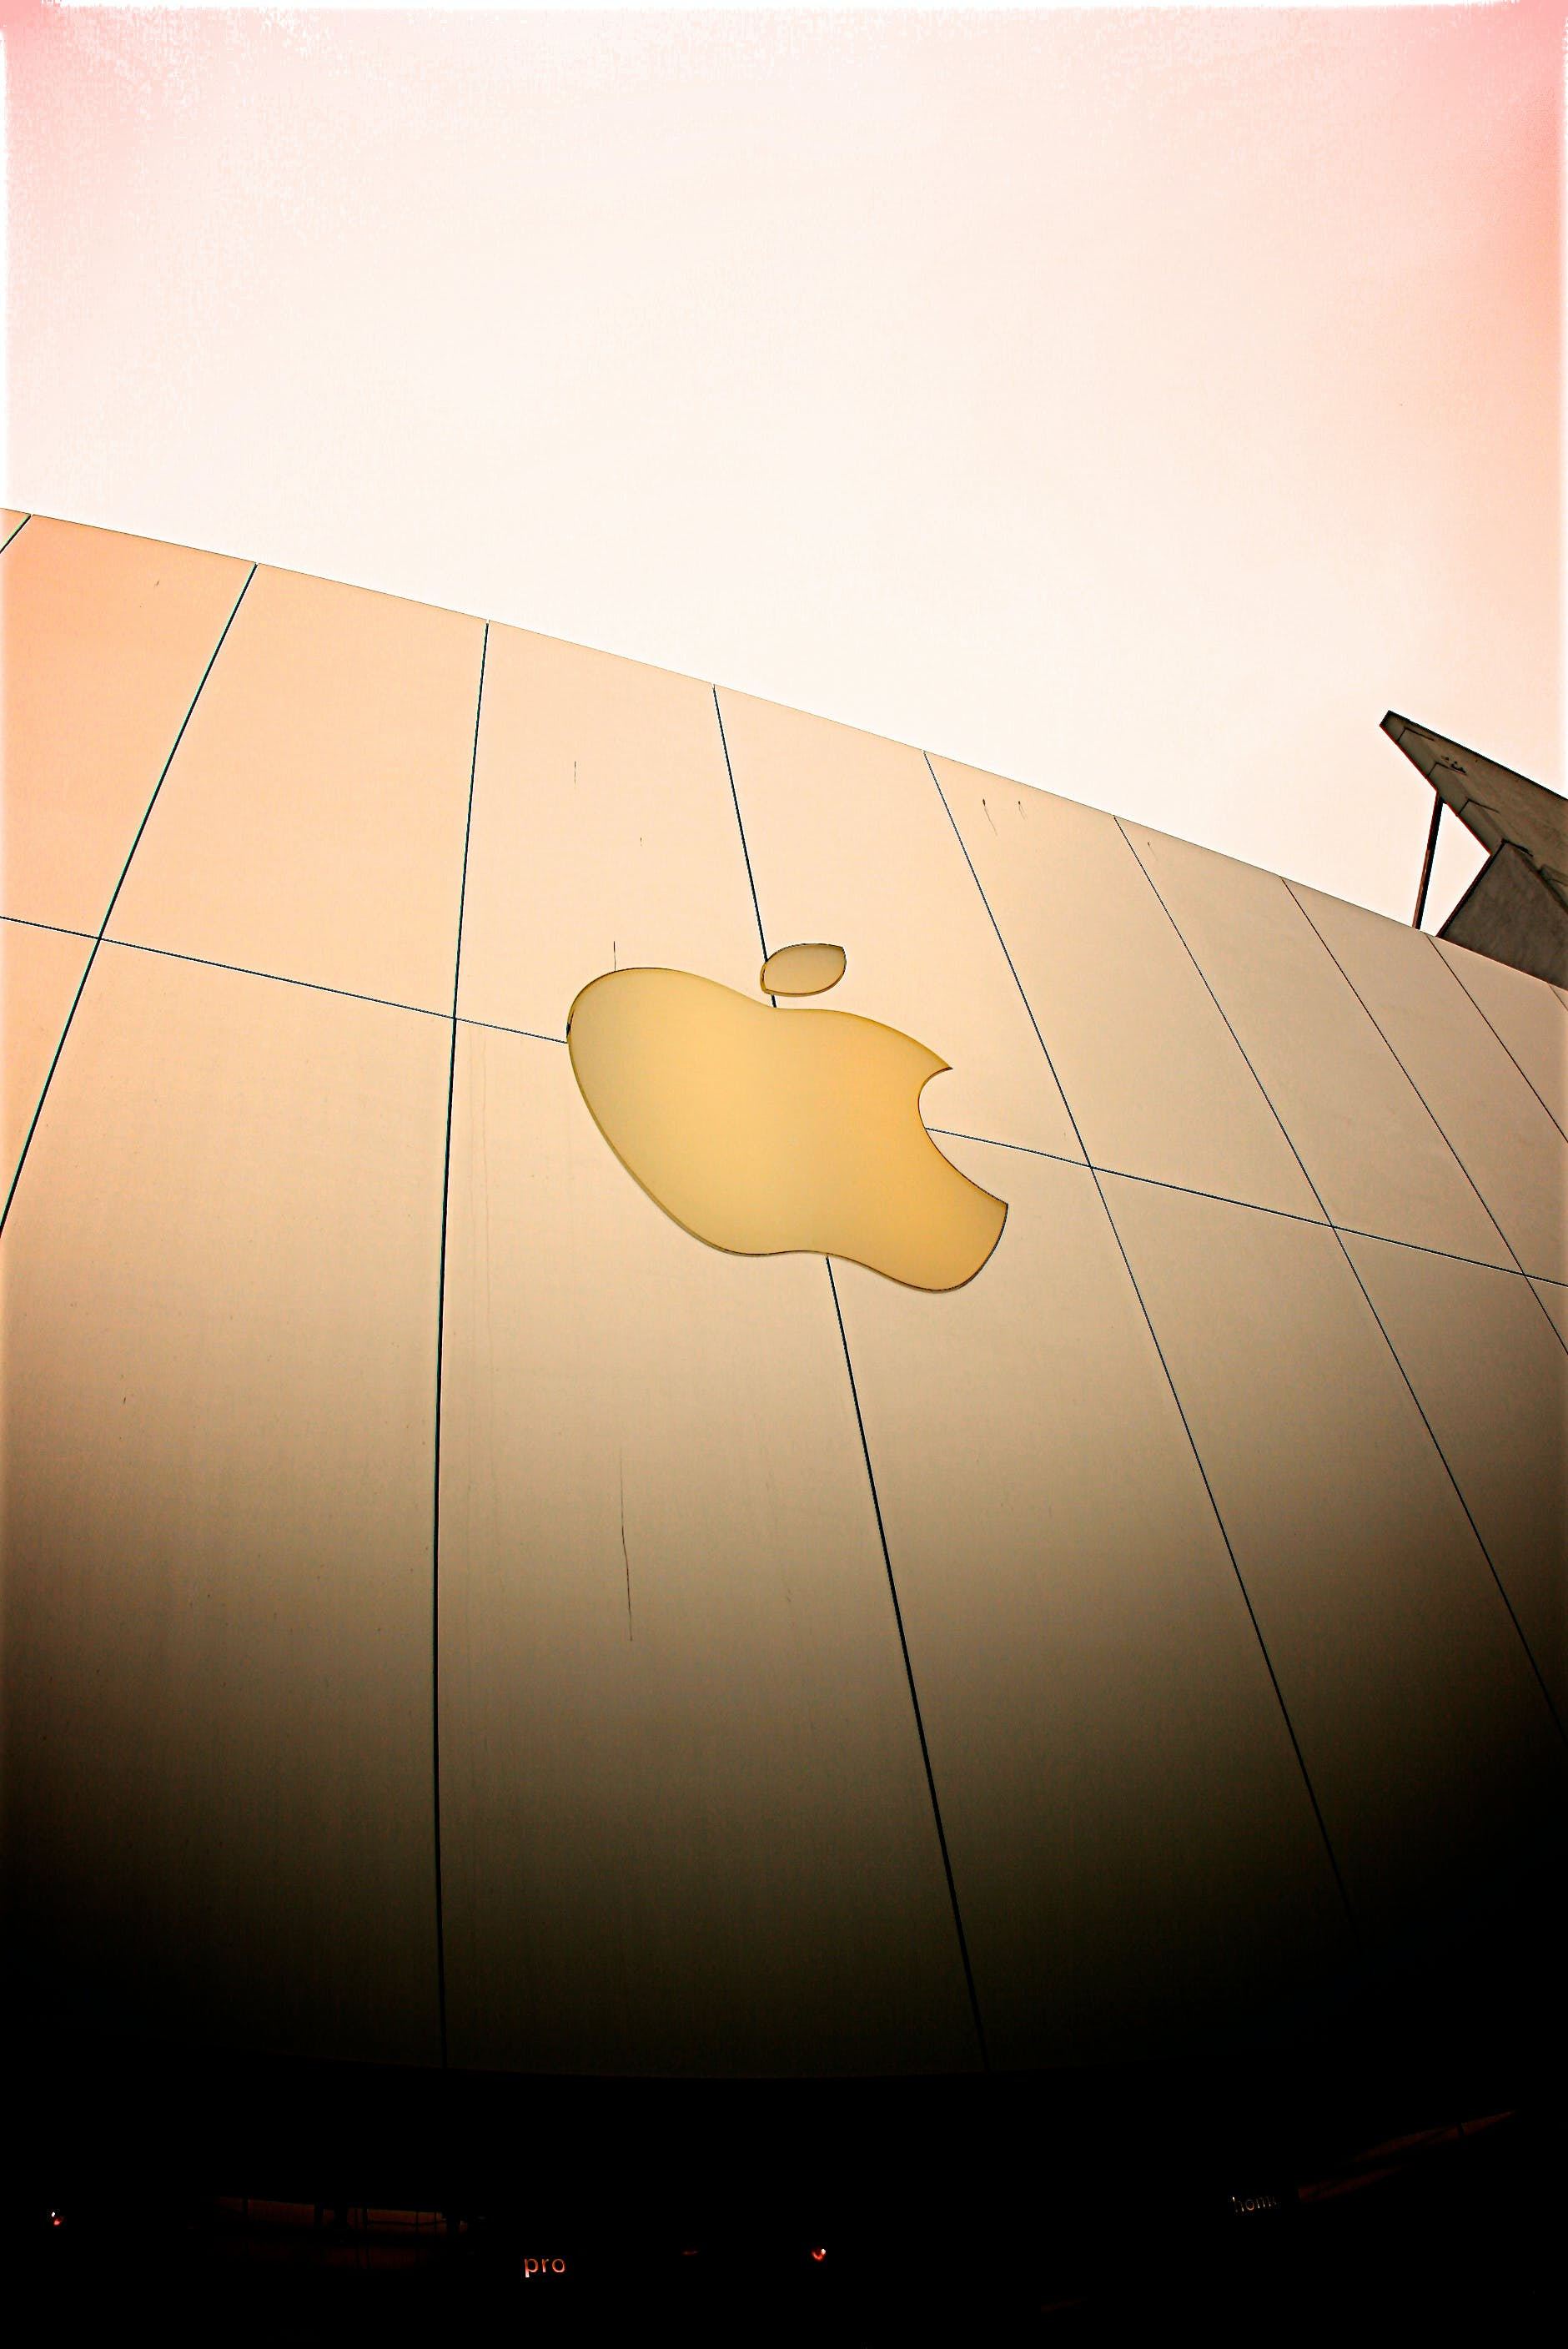 Free stock photo of apple, building, architecture, logo